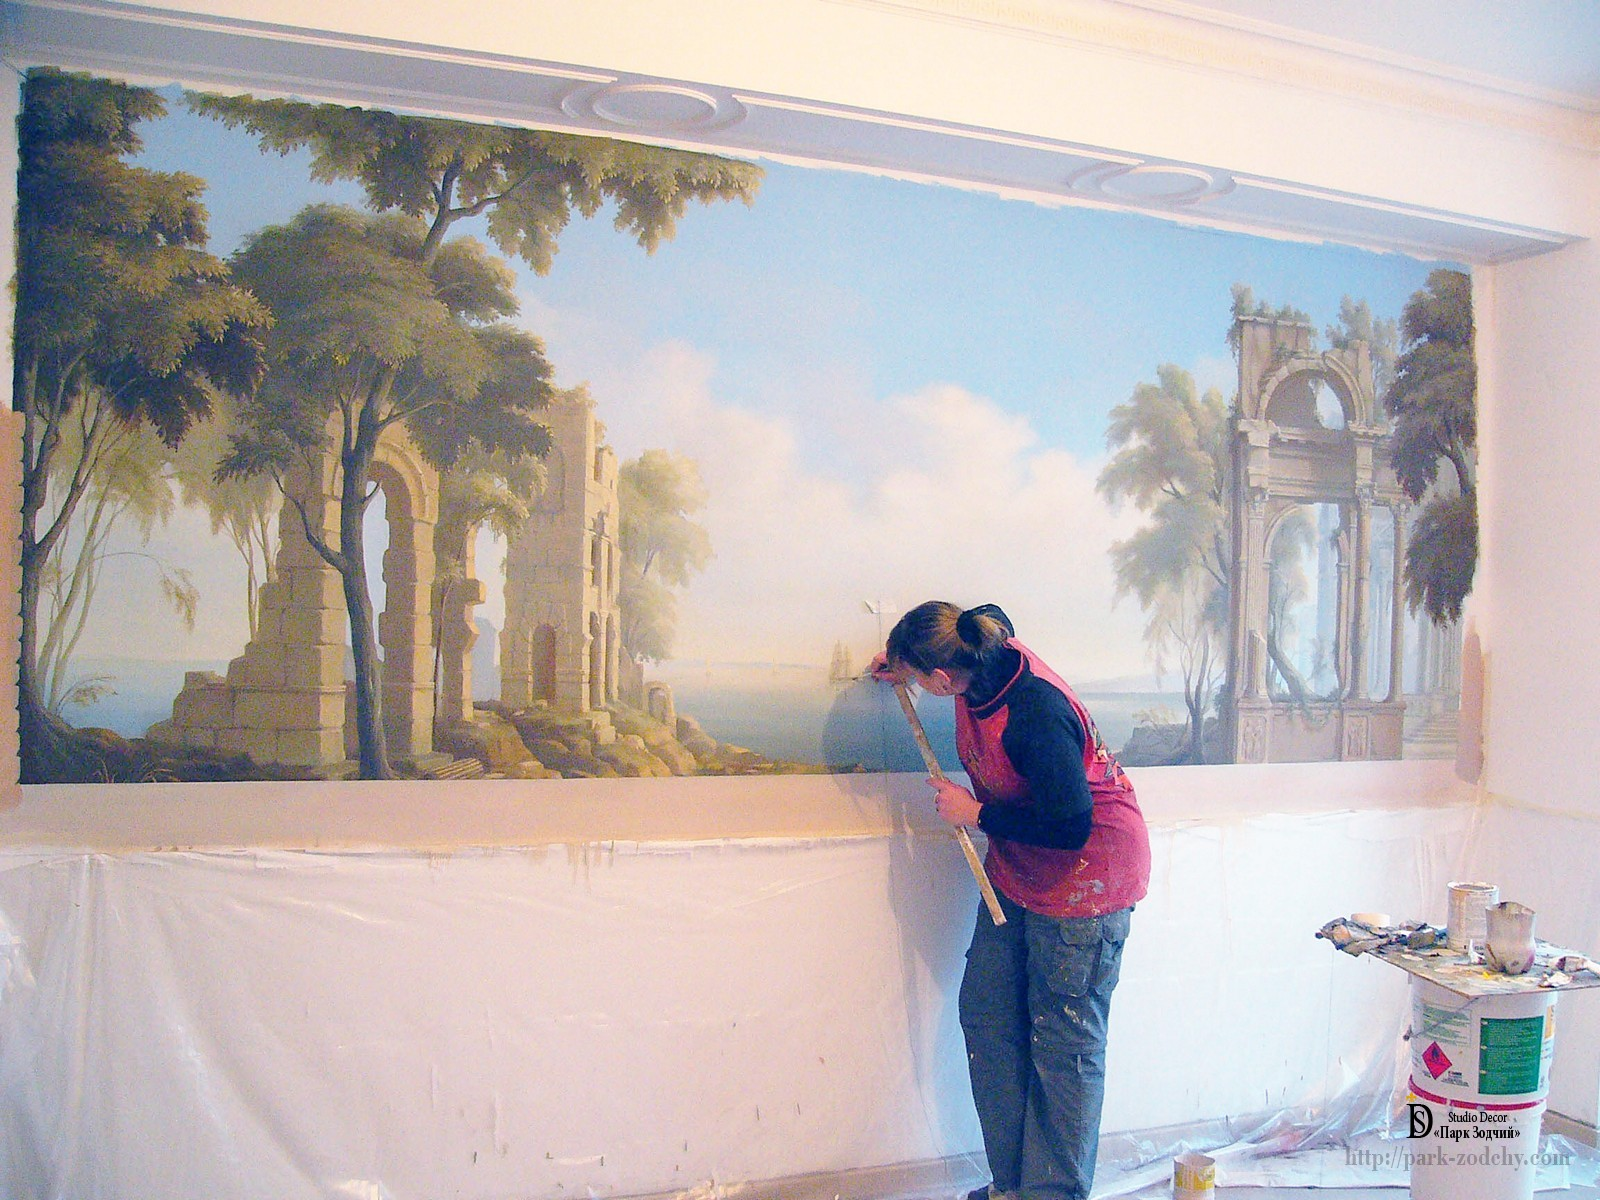 Recreating trompe l'oeil on the dining room wall